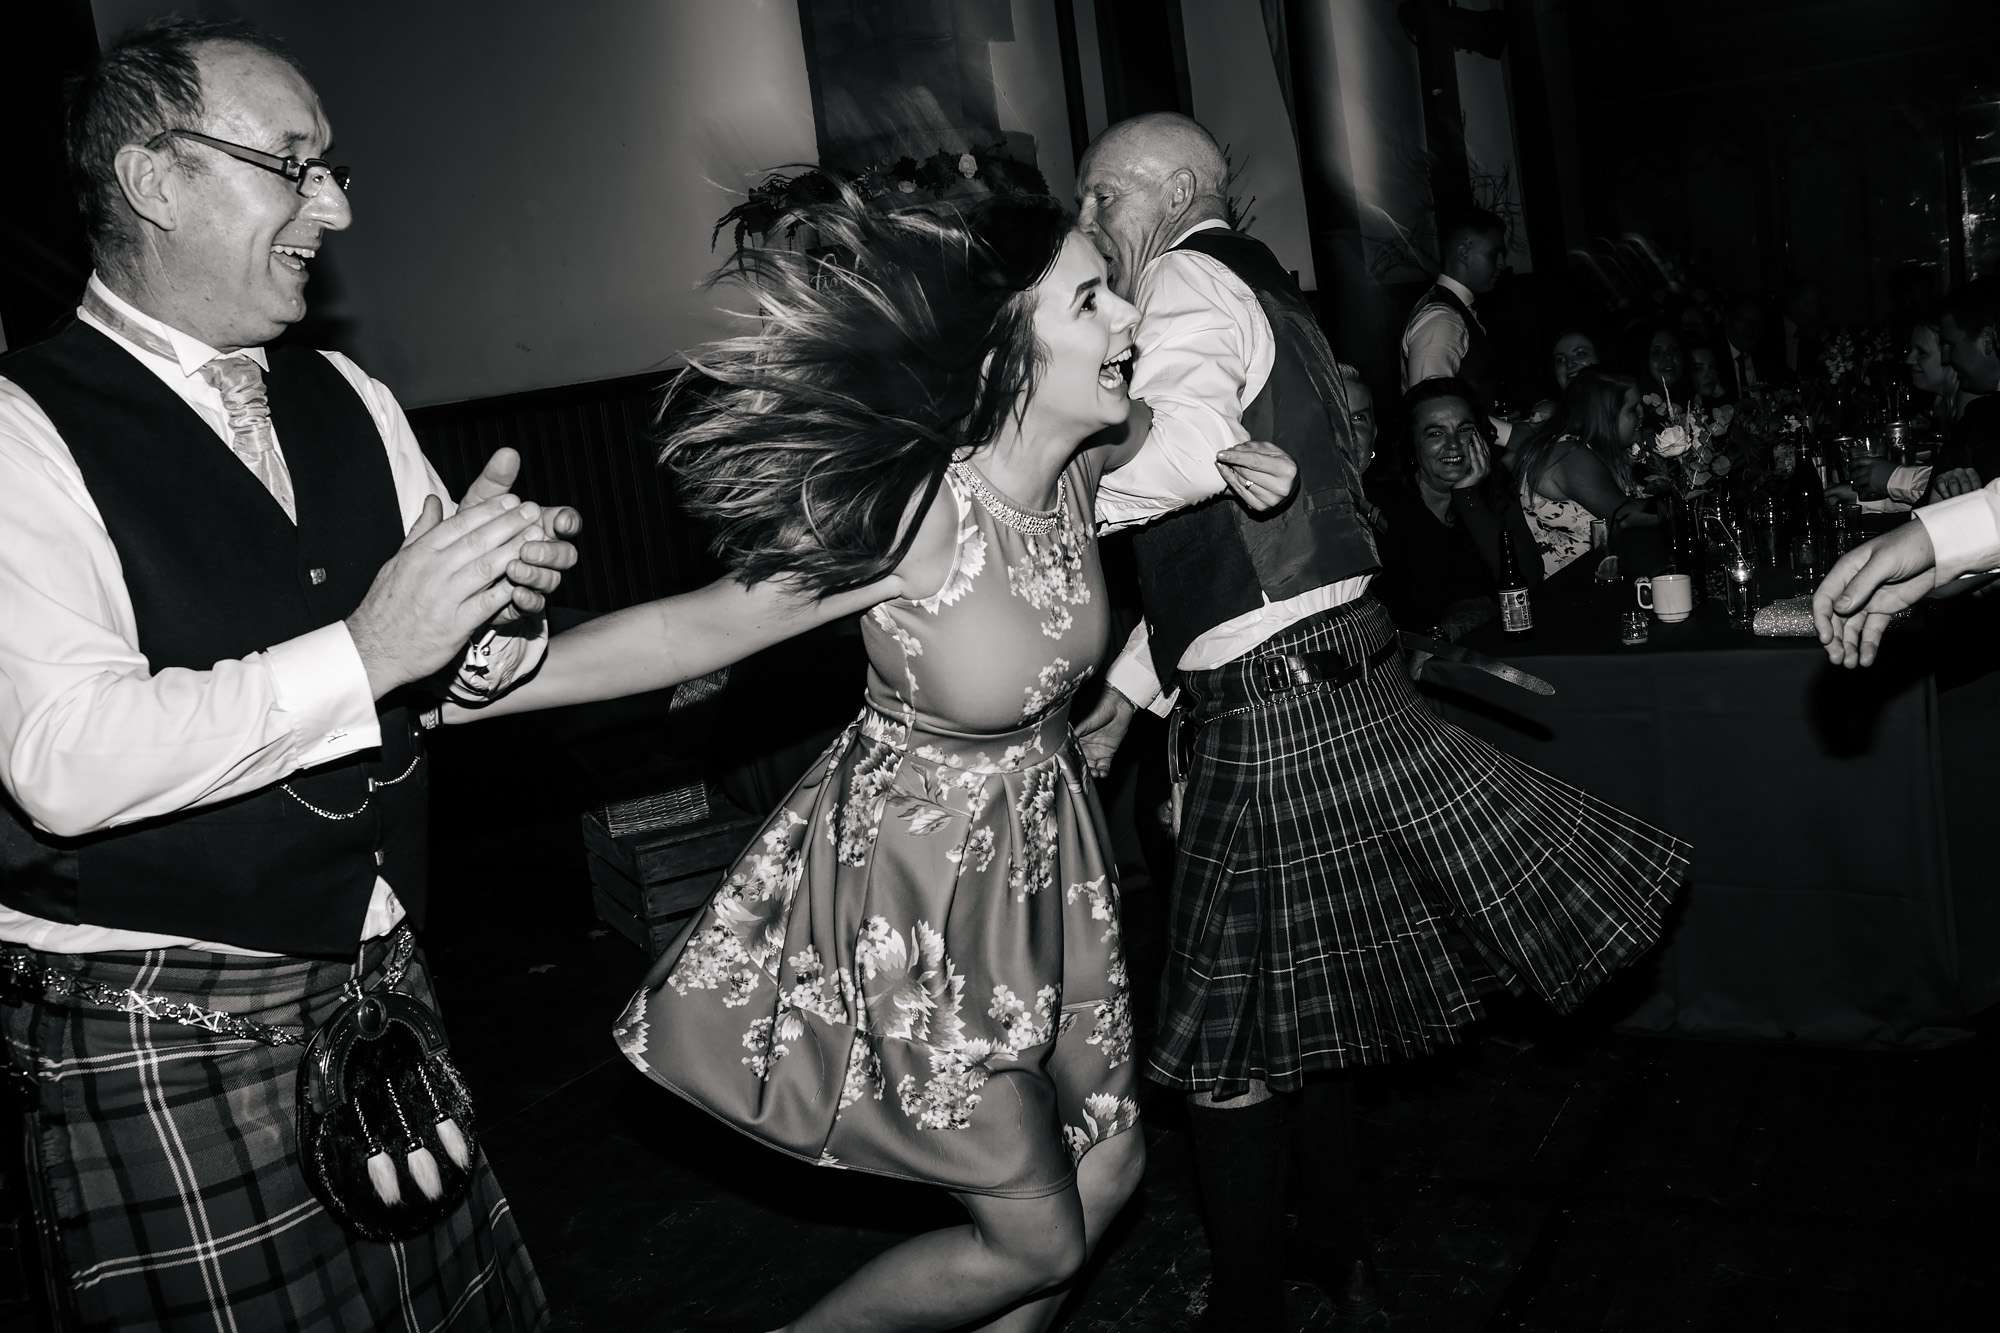 Ceilidh dancing at a wedding in Scotland